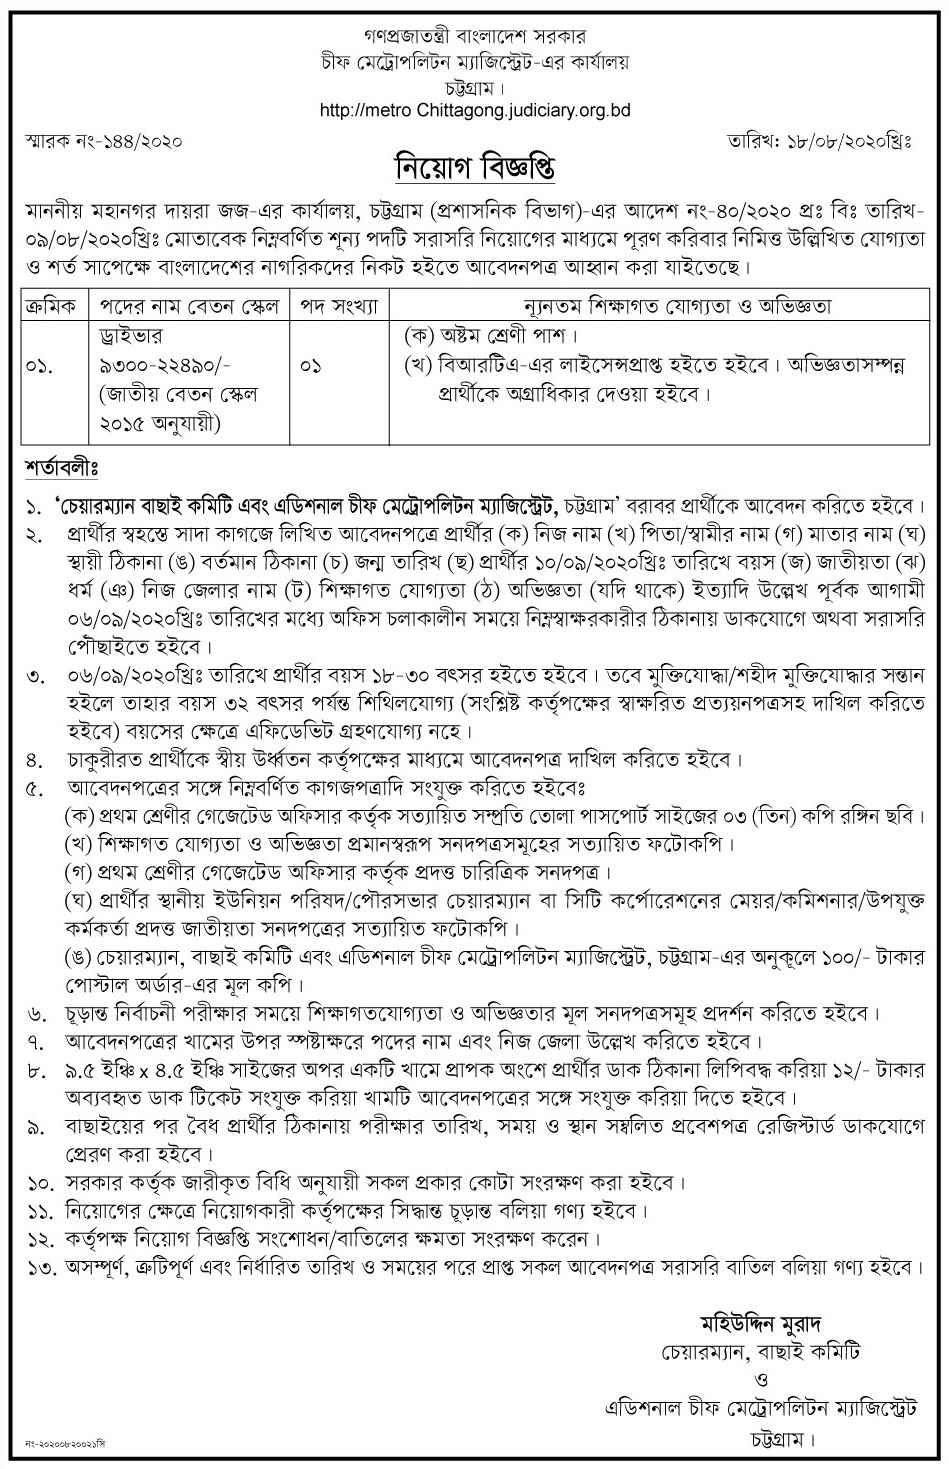 Chief Metropolitan Magistrate Office Job Circular 2020